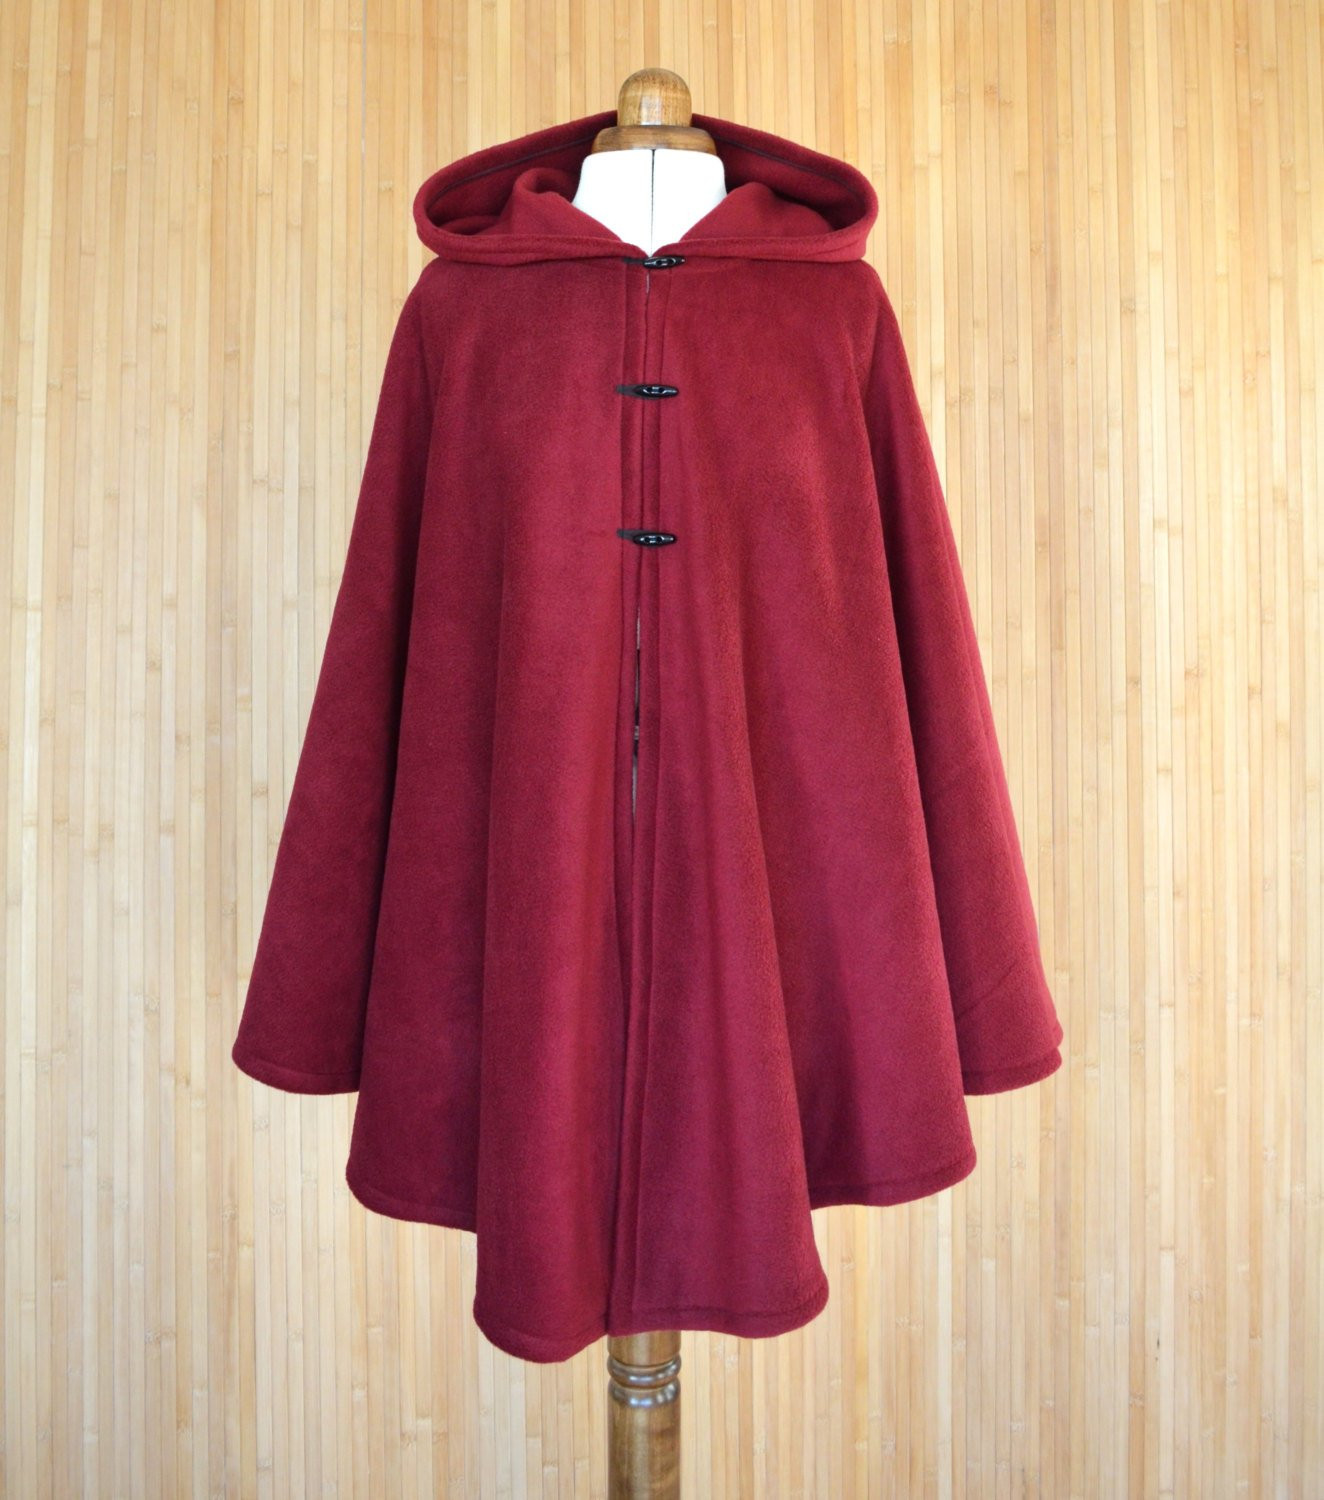 Red Hooded Cape Beautiful Burgundy Hooded Cloak Dark Red Hooded Cape Plus Size Cape Of Perfect 49 Photos Red Hooded Cape